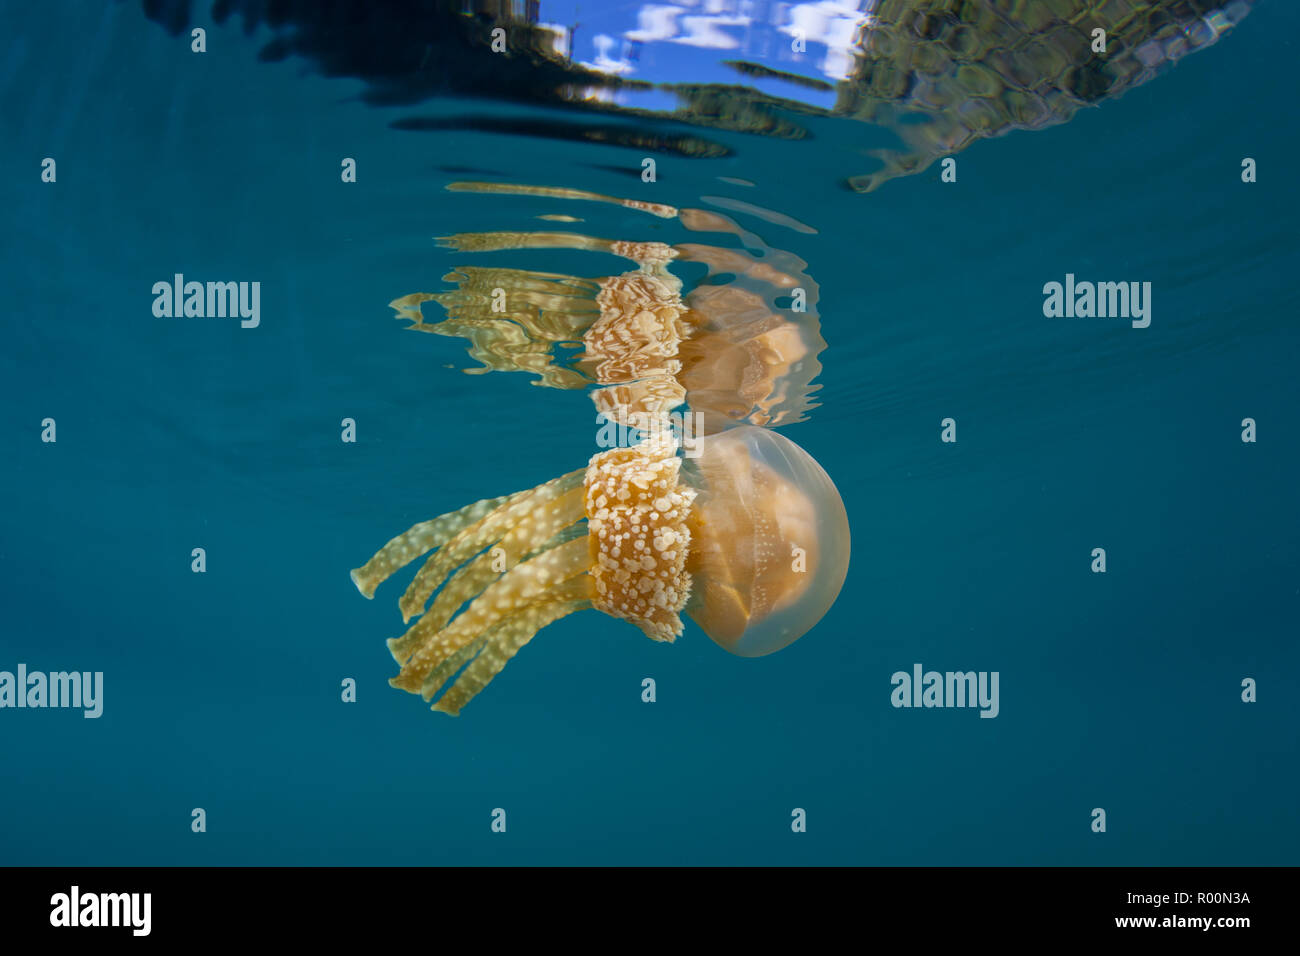 A Golden jellyfish, Mastigias papua, drifts in shallow water in Raja Ampat, Indonesia. This region is known for its spectacular marine biodiversity. - Stock Image